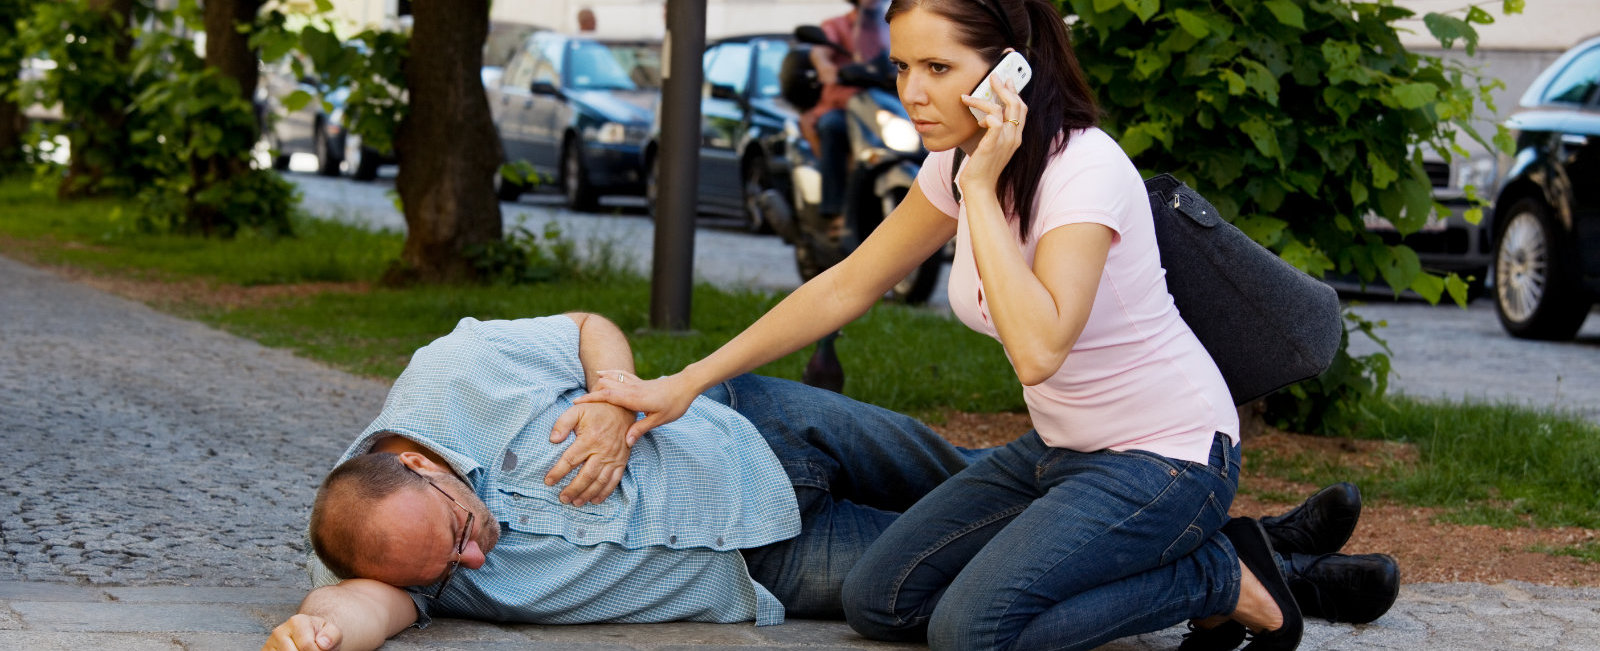 One day emergency first aid training course in Colchester, Essex